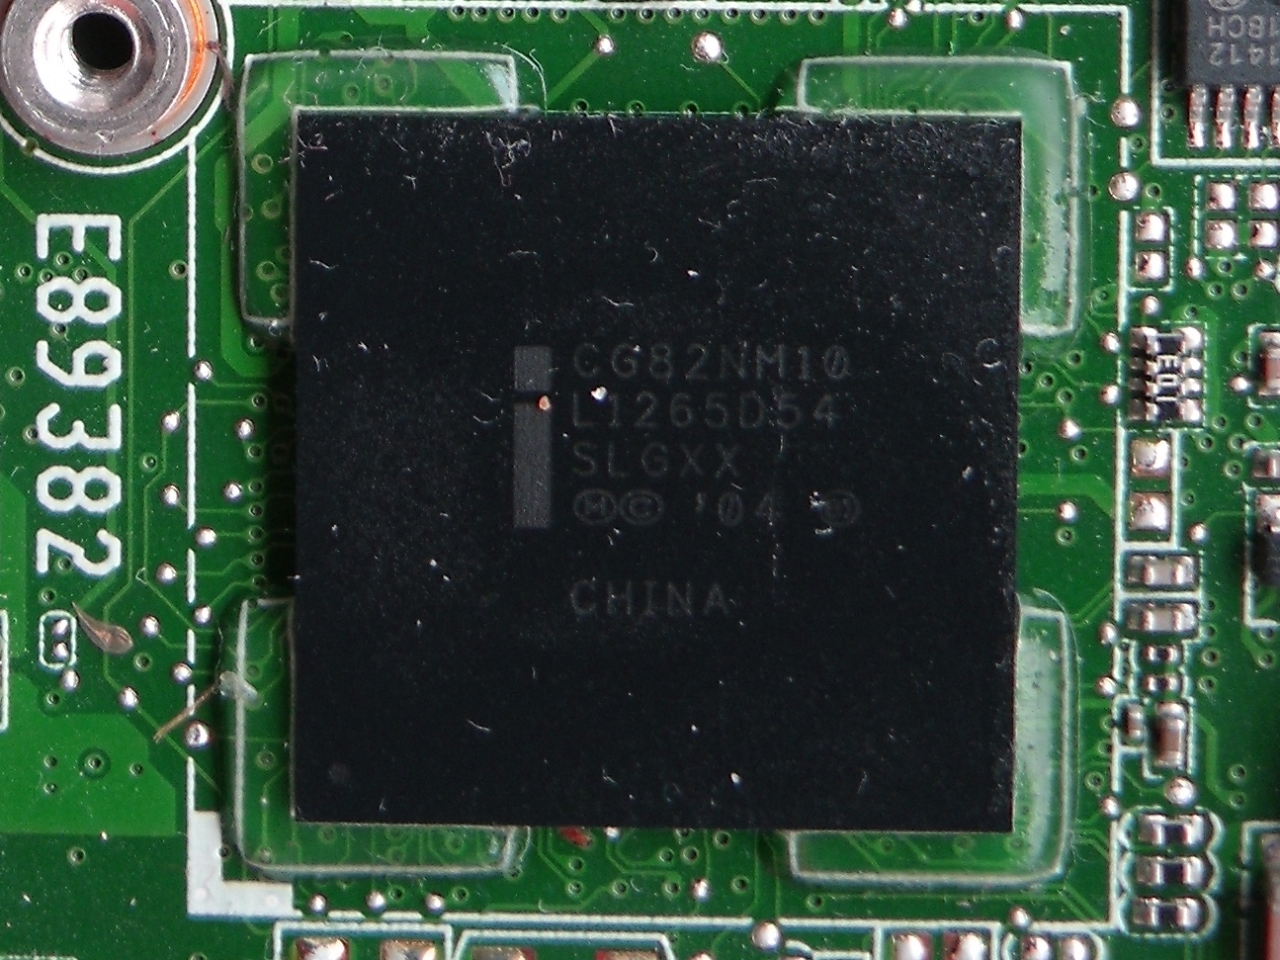 Intel NM10 Express Chipset Product Specifications